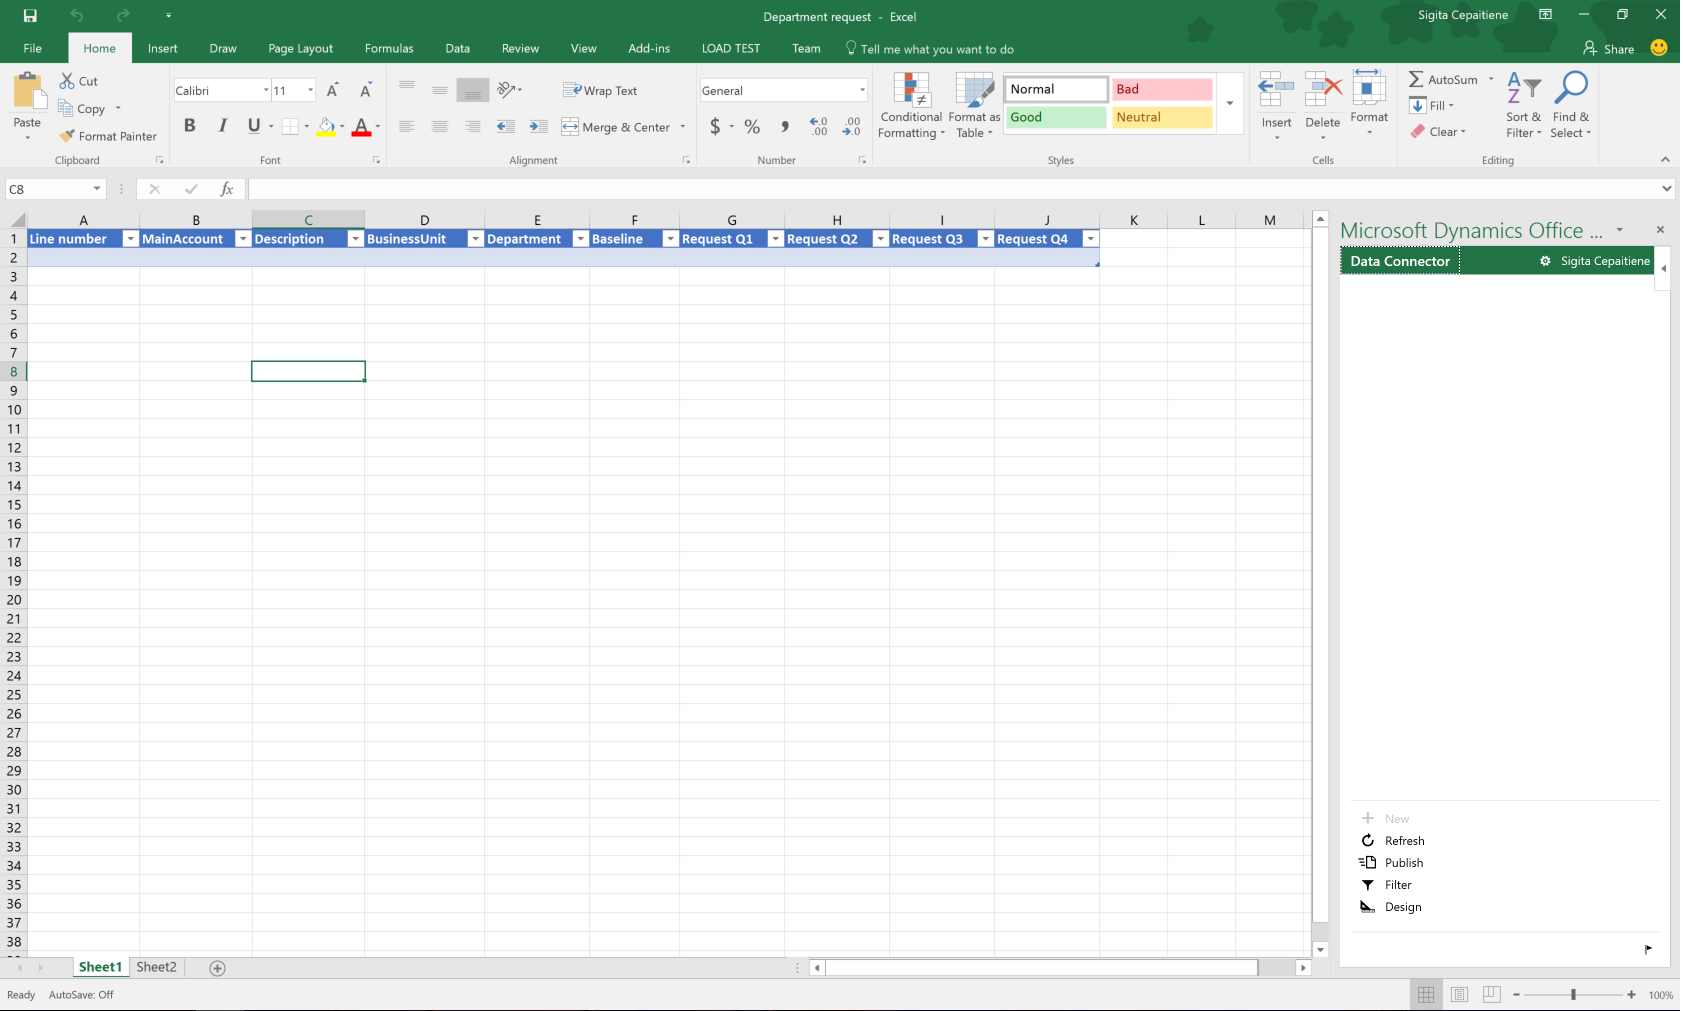 Time In Lieu Spreadsheet Template For Budget Planning Templates For Excel  Finance  Operations